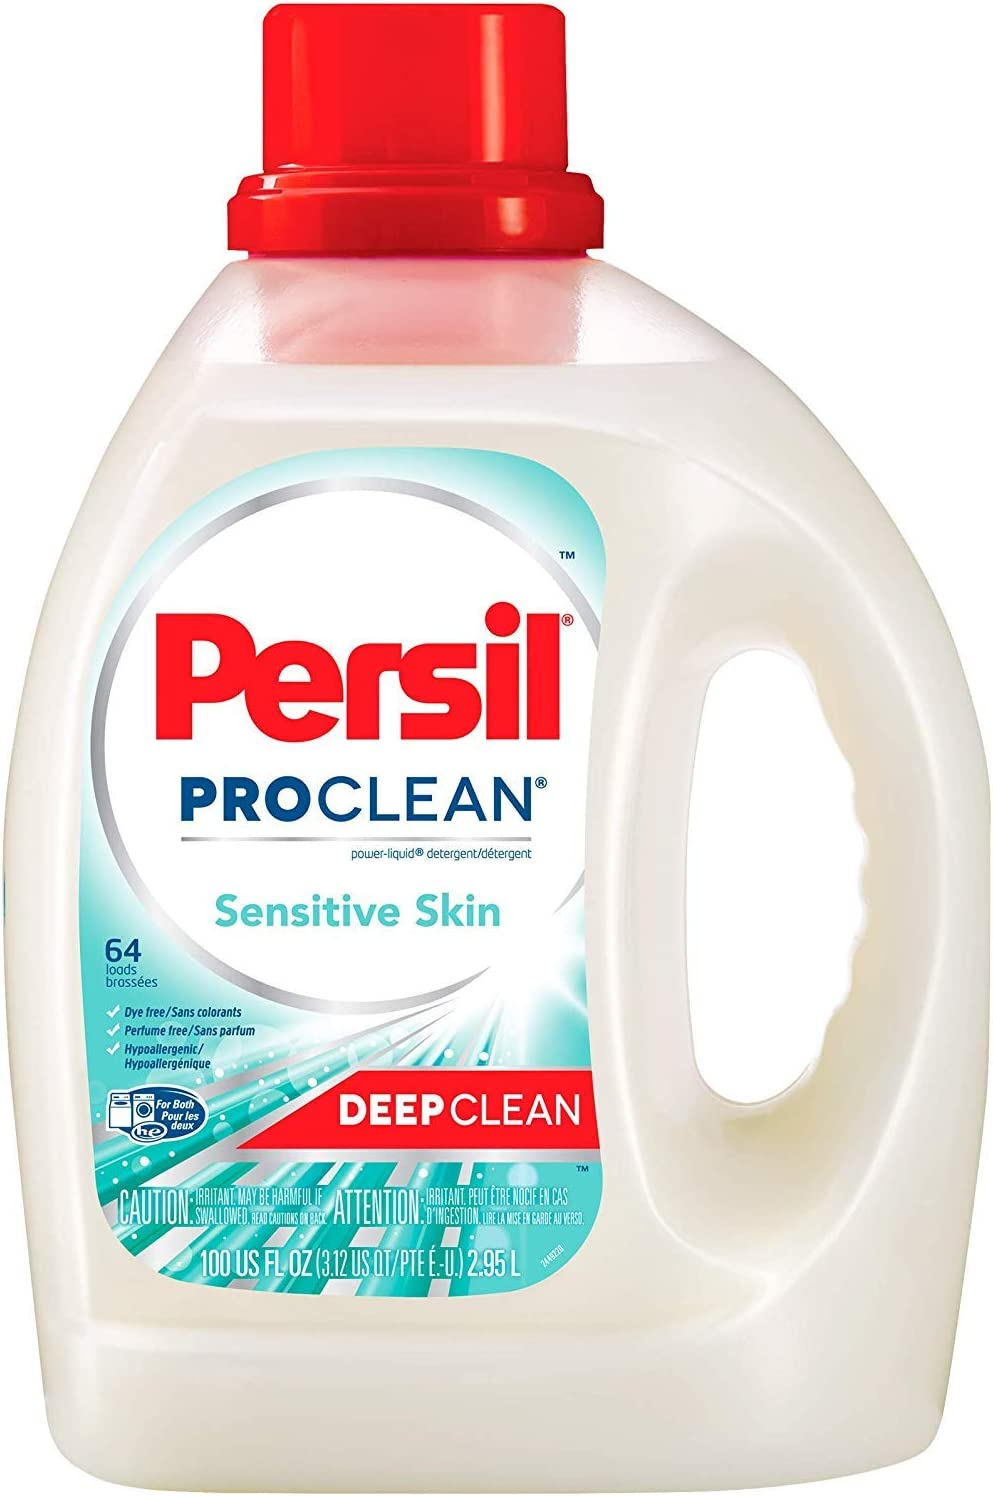 Persil ProClean Hypoallergenic Power-Liquid Sensitive Skin Laundry Detergent, 100 fl oz (1) (1)